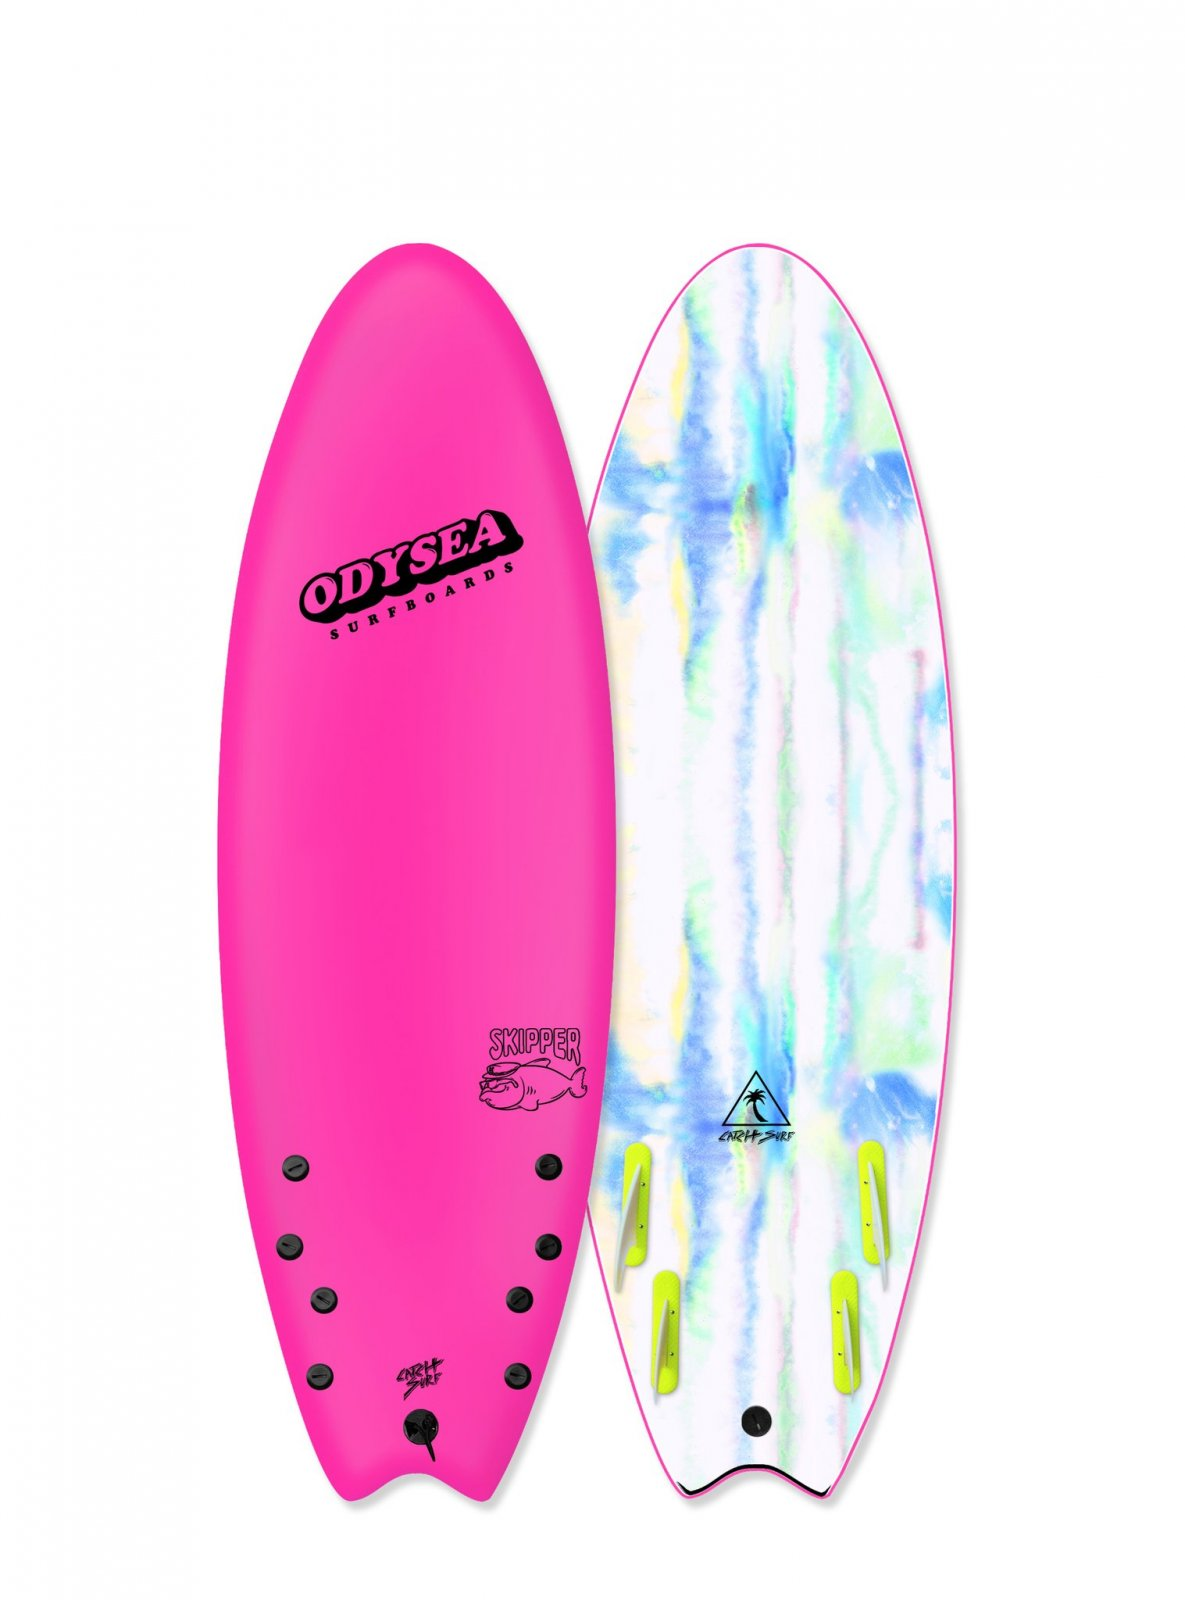 Odysea 5'6 Skipper- Quad